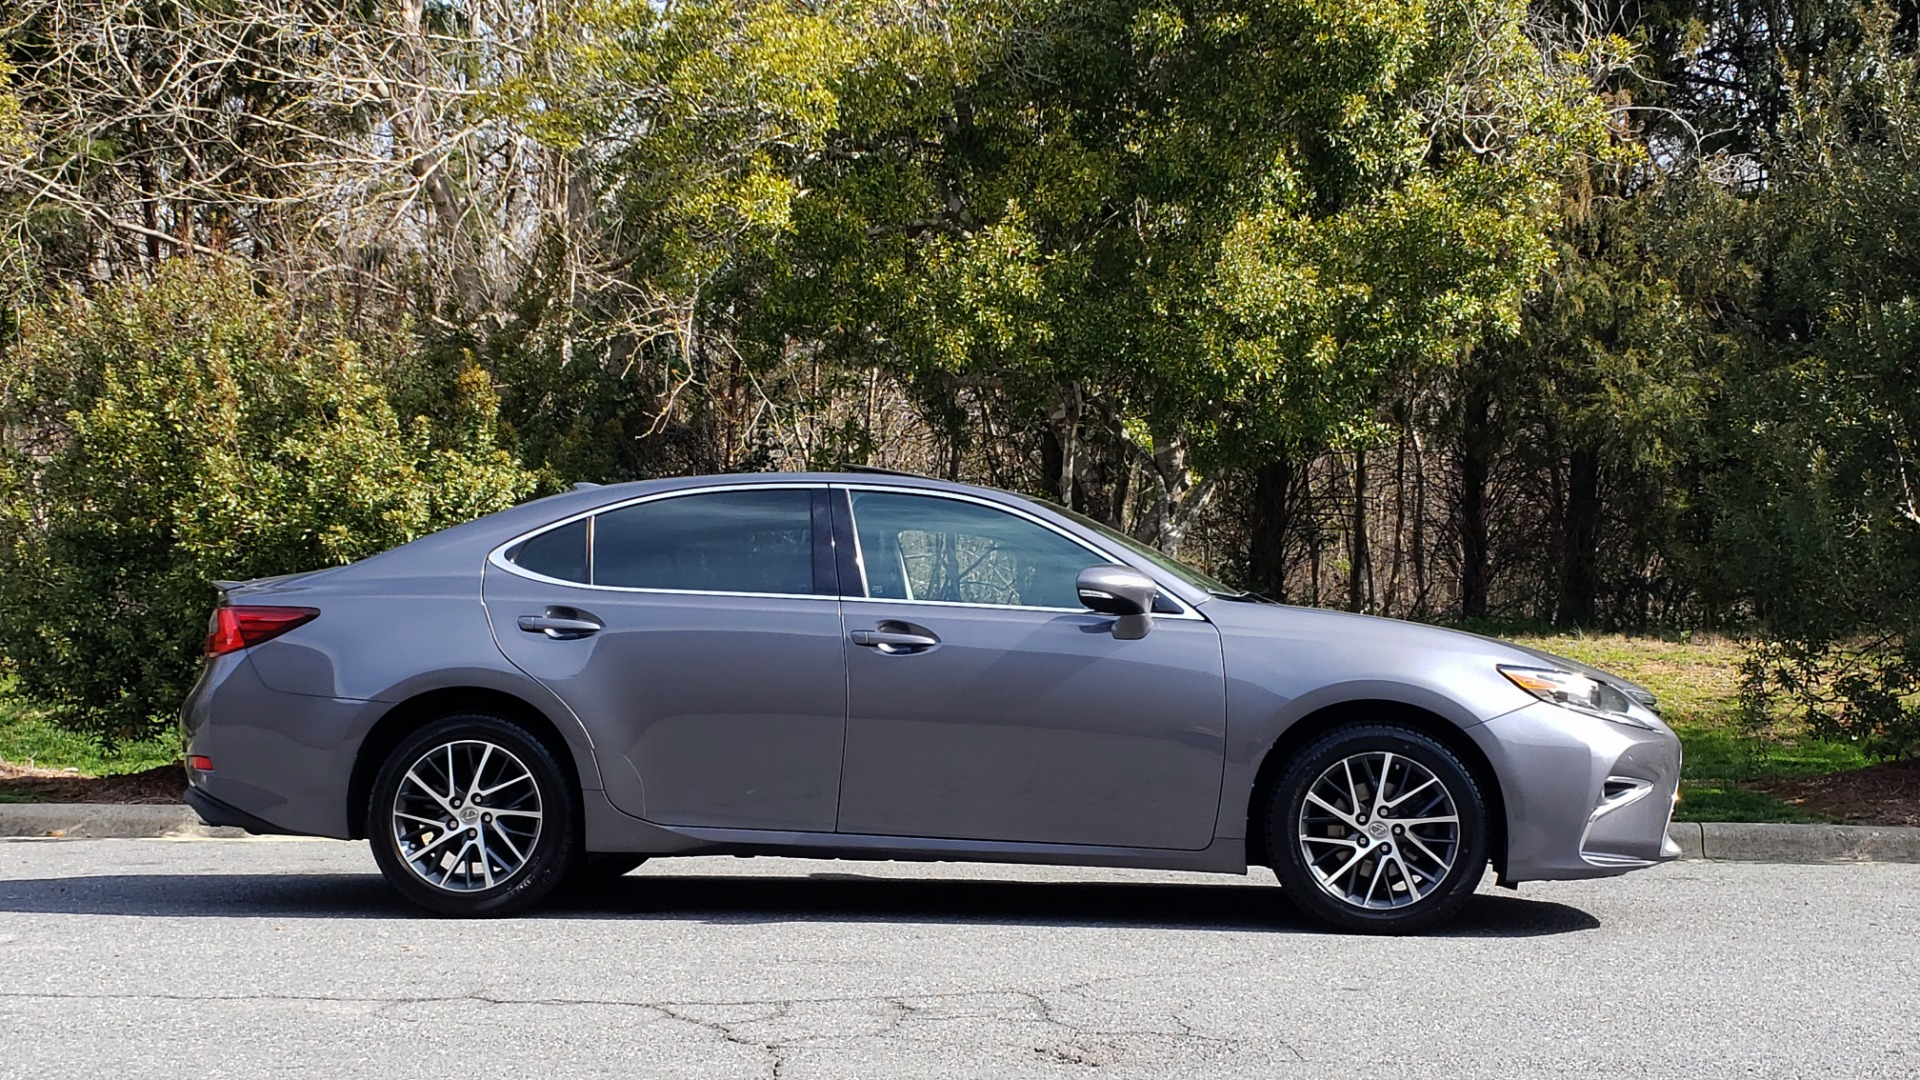 Used 2016 Lexus ES 350 4-DR PREMIUM / SUNROOF / BSM / REARVIEW / VENT STS for sale Sold at Formula Imports in Charlotte NC 28227 5